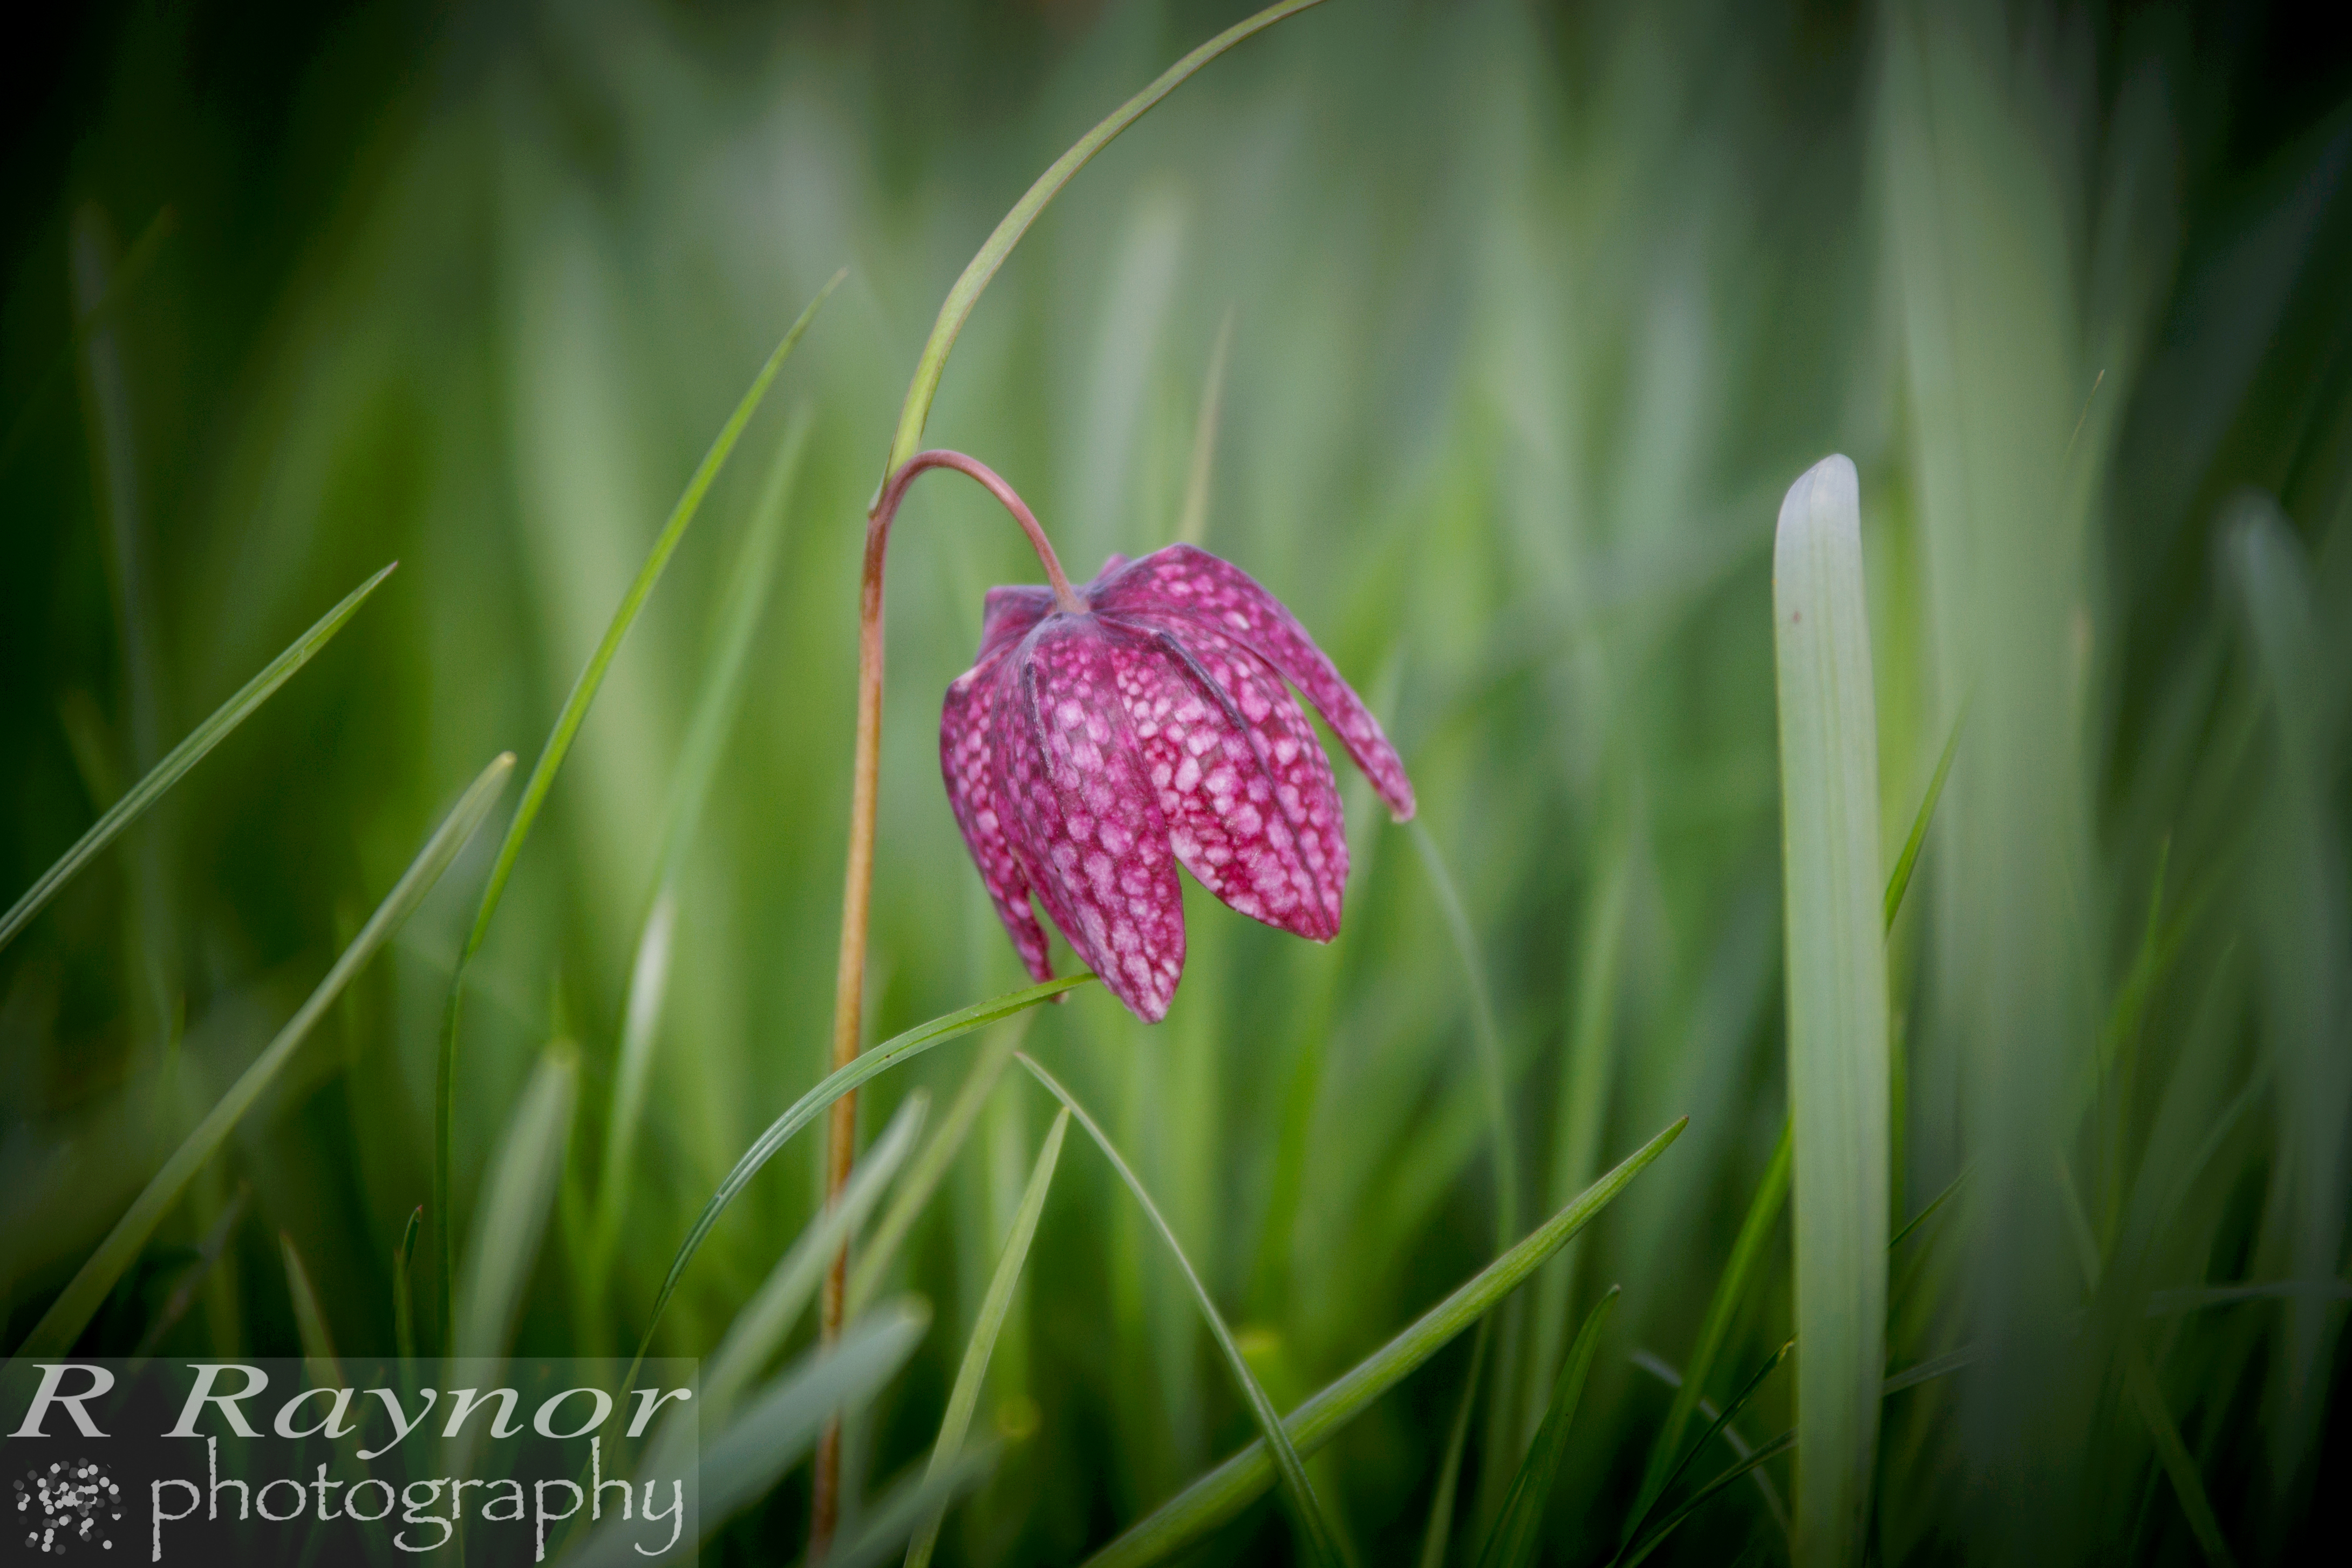 First_20150412_RRaynor0002